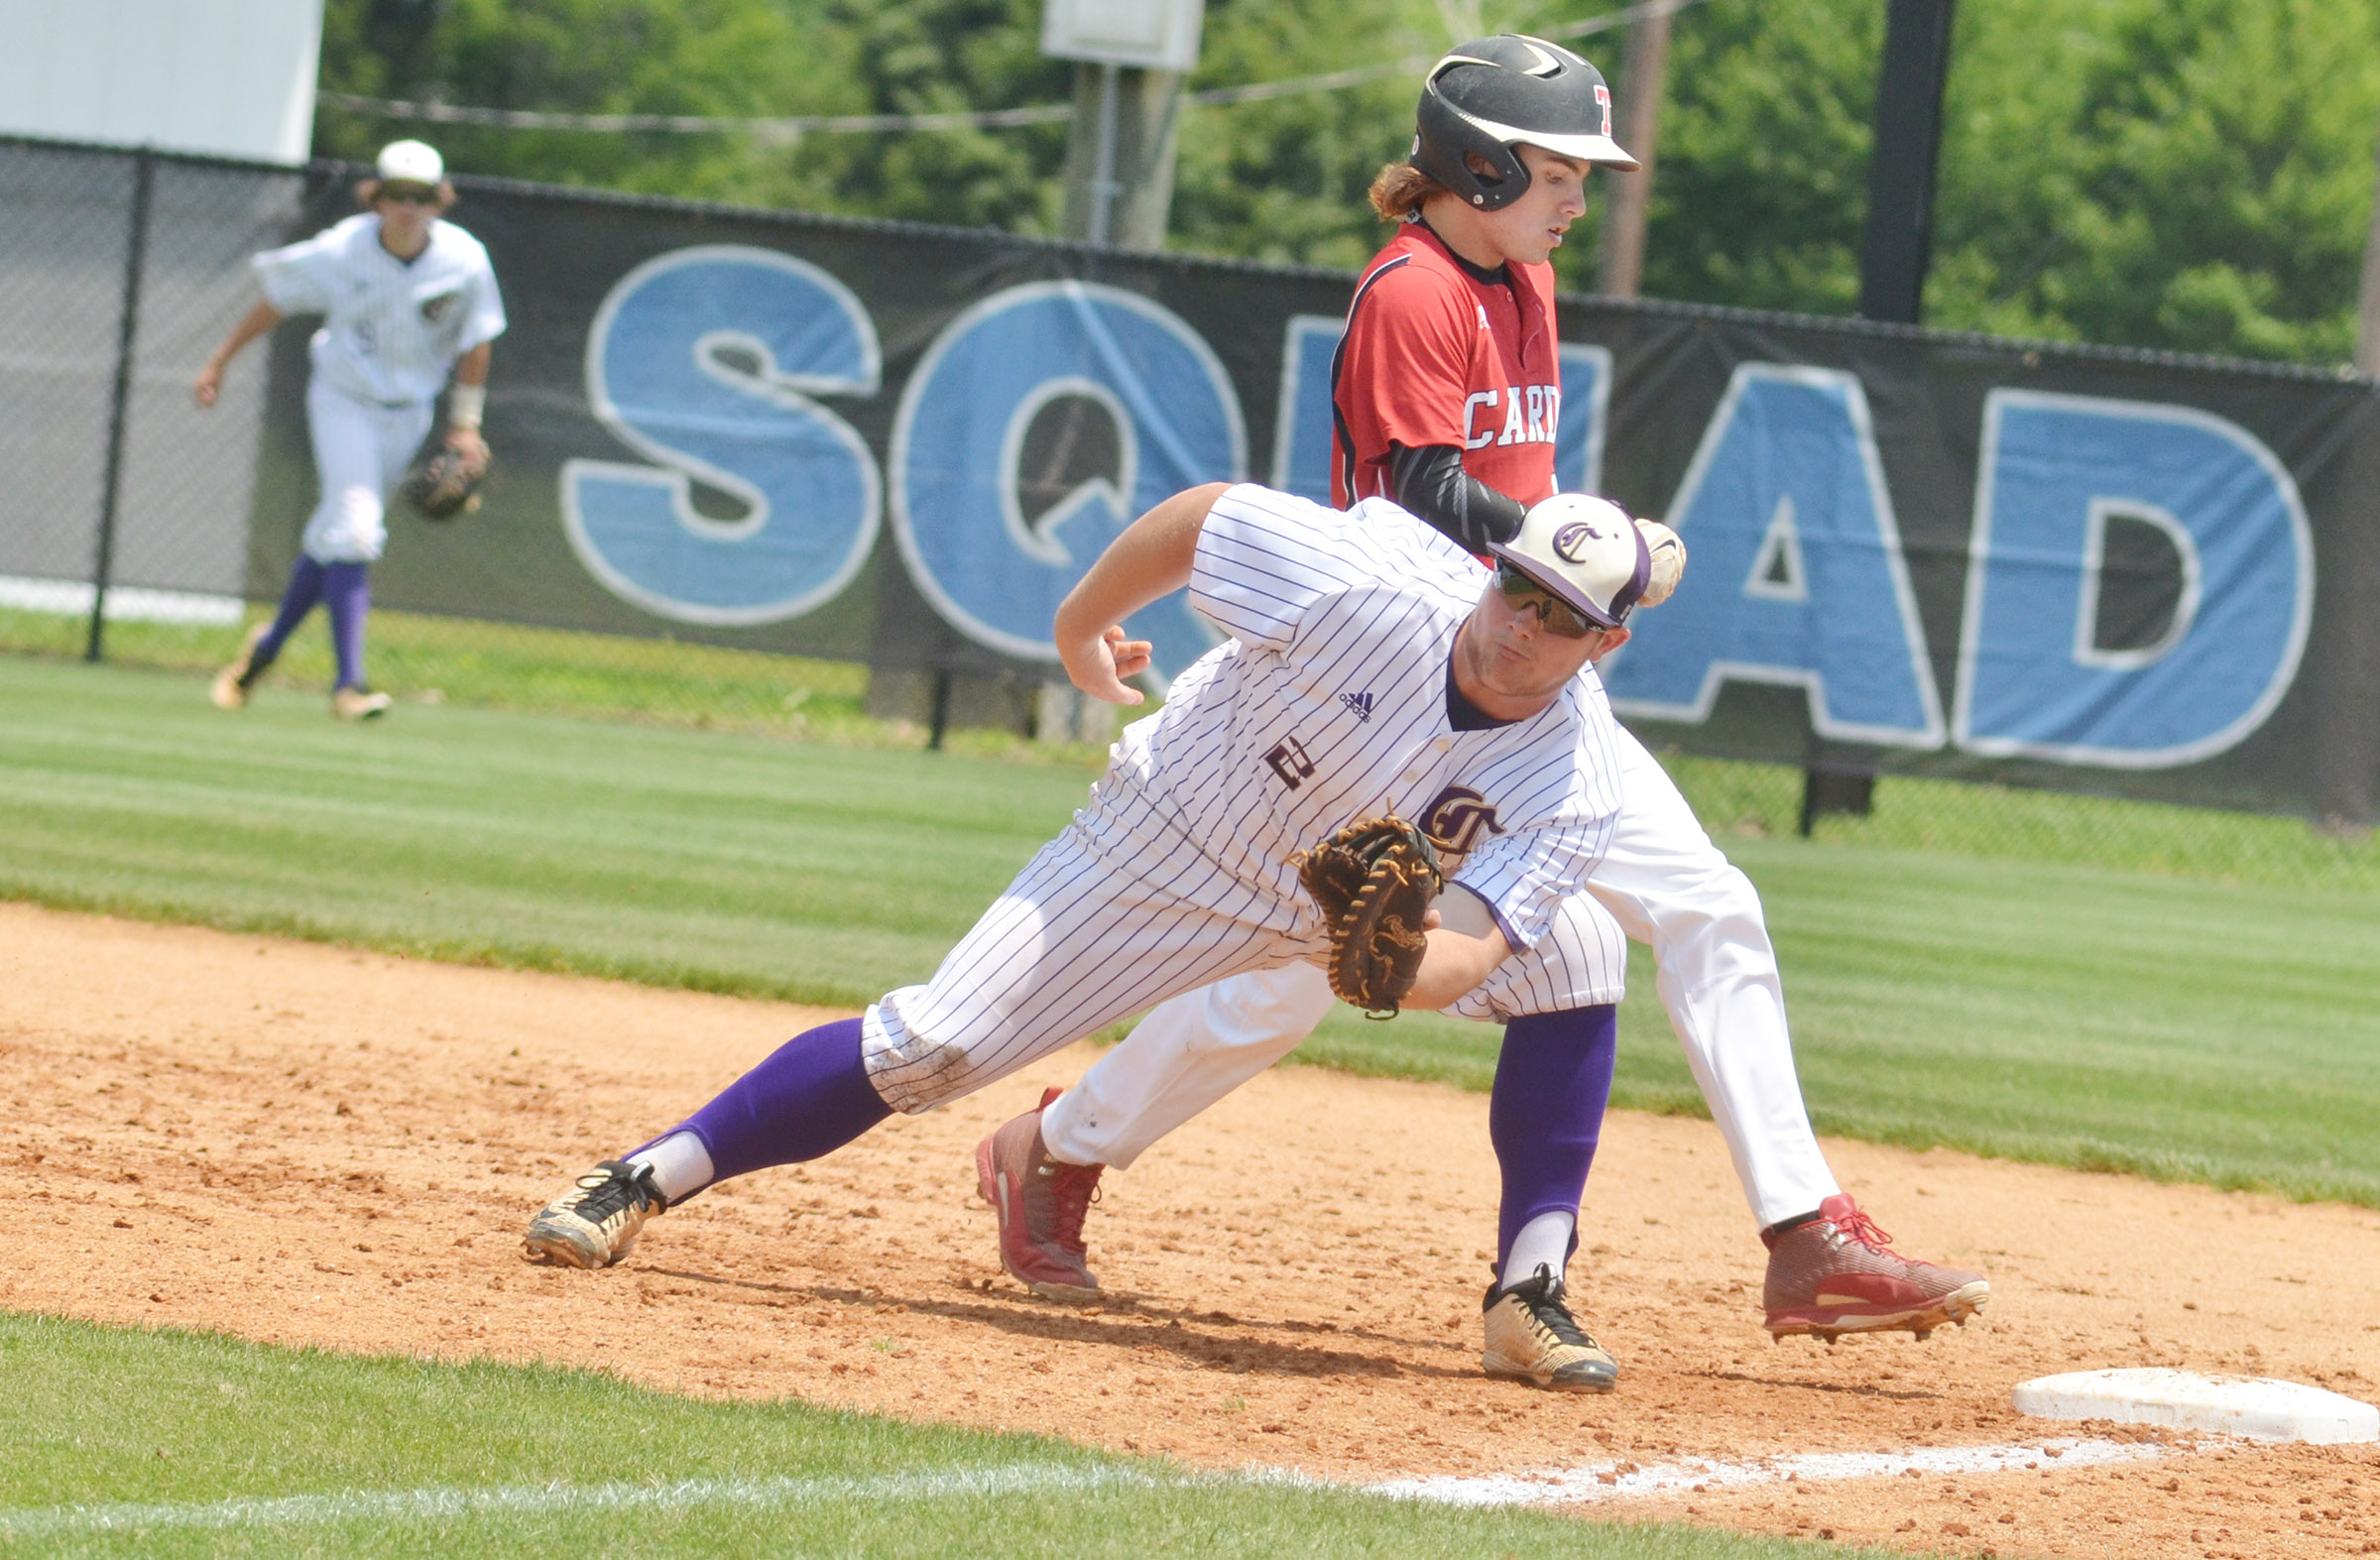 CHS sophomore Lane Bottoms tries to get the runner out at second.